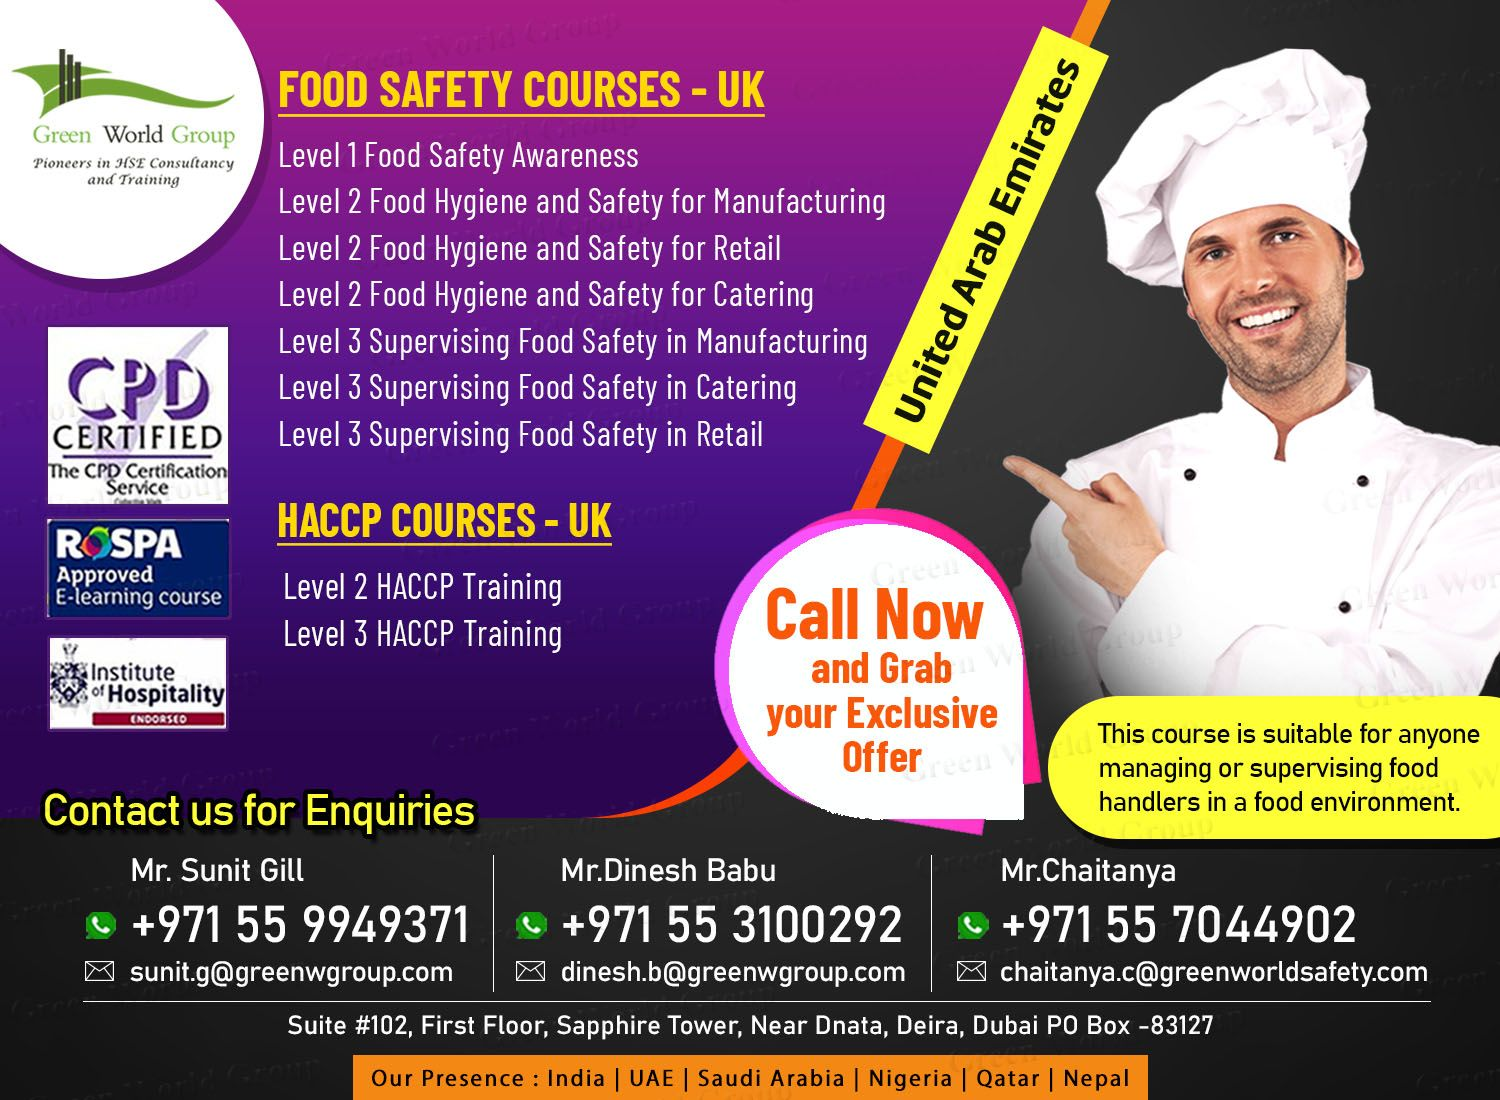 Exclusive Offer for HACCP and Food Safety courses in UAE